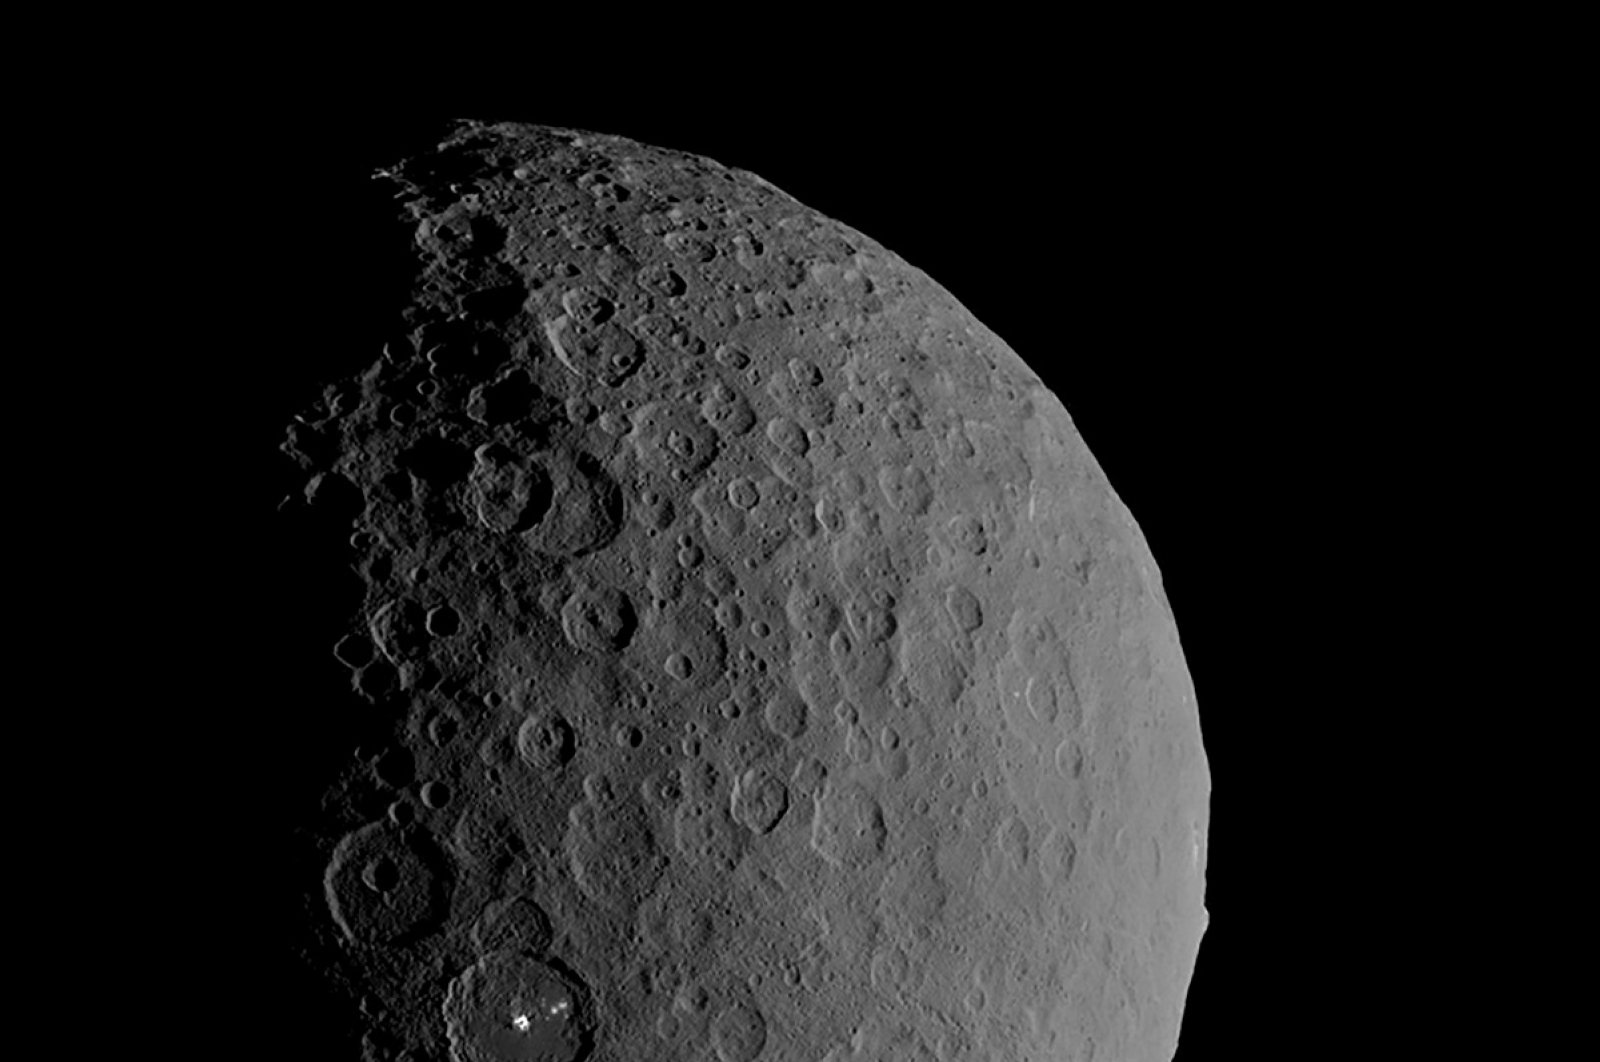 Occator Crater and Ahuna Mons appear together in this view of the dwarf planet Ceres obtained by NASA's Dawn spacecraft on Feb. 11, 2017. (NASA/JPL-Caltech/UCLA/MPS/DLR/IDA handout via Reuters)